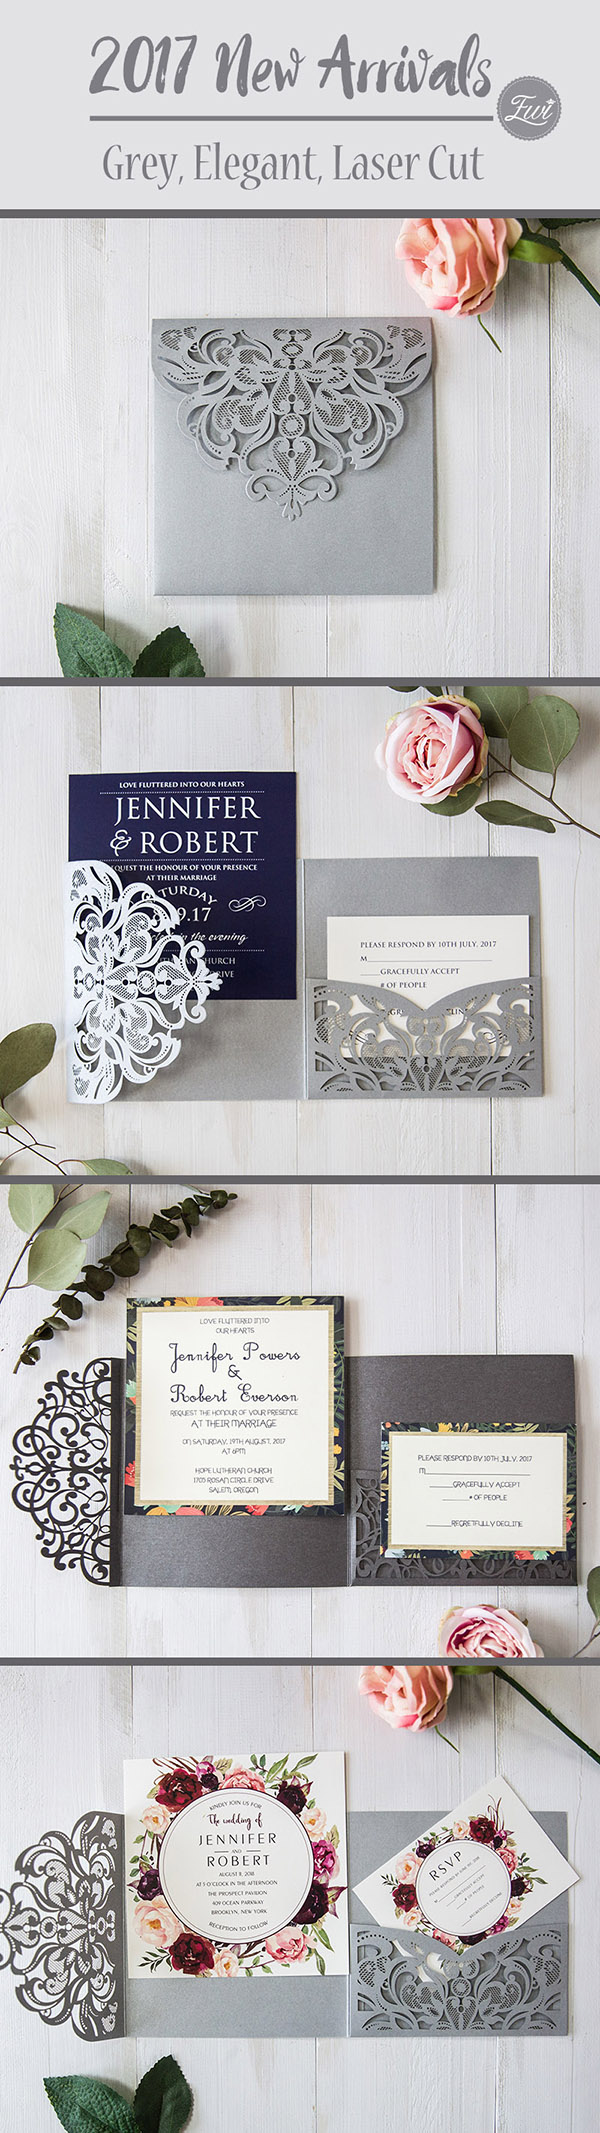 elegant gray laser cut wedding invitations with different inner cards